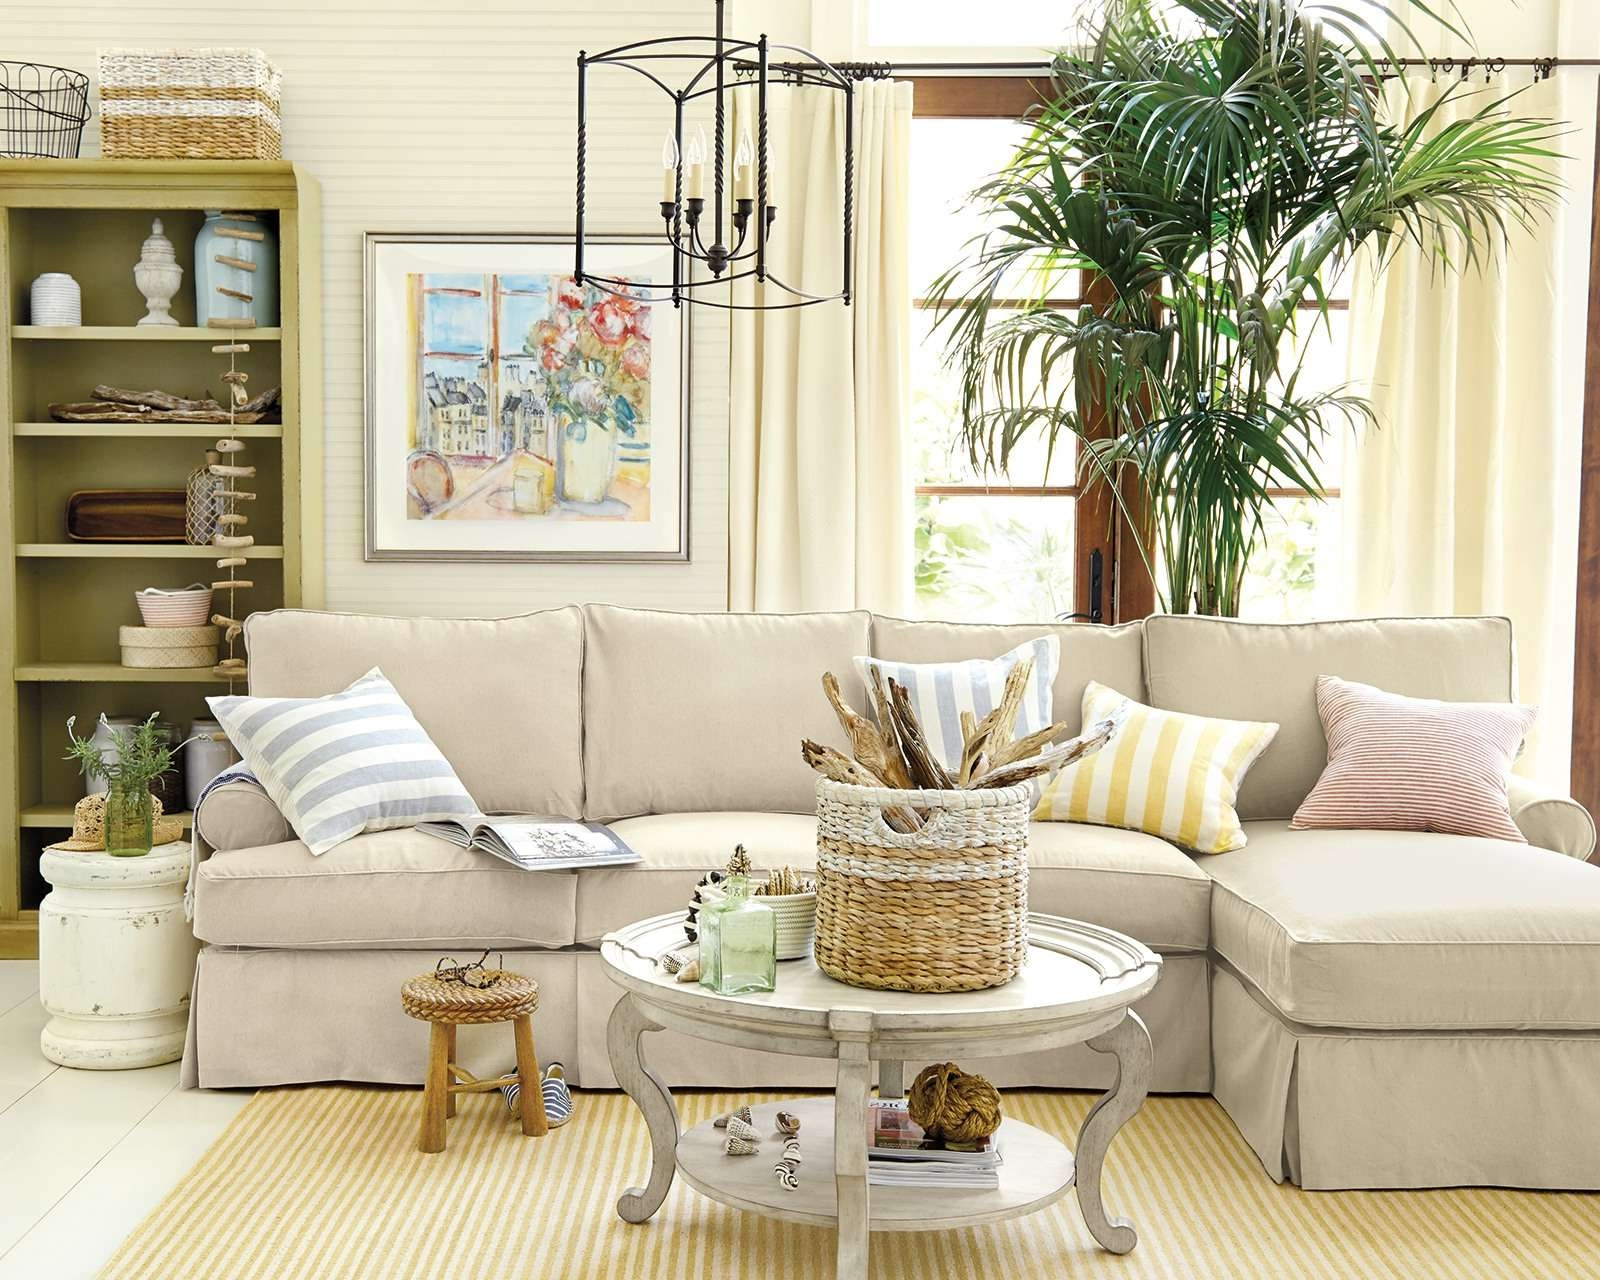 Most Popular Coffee Table For Sectional Sofa With Regard To How To Match A Coffee Table To Your Sectional – How To Decorate (View 3 of 20)